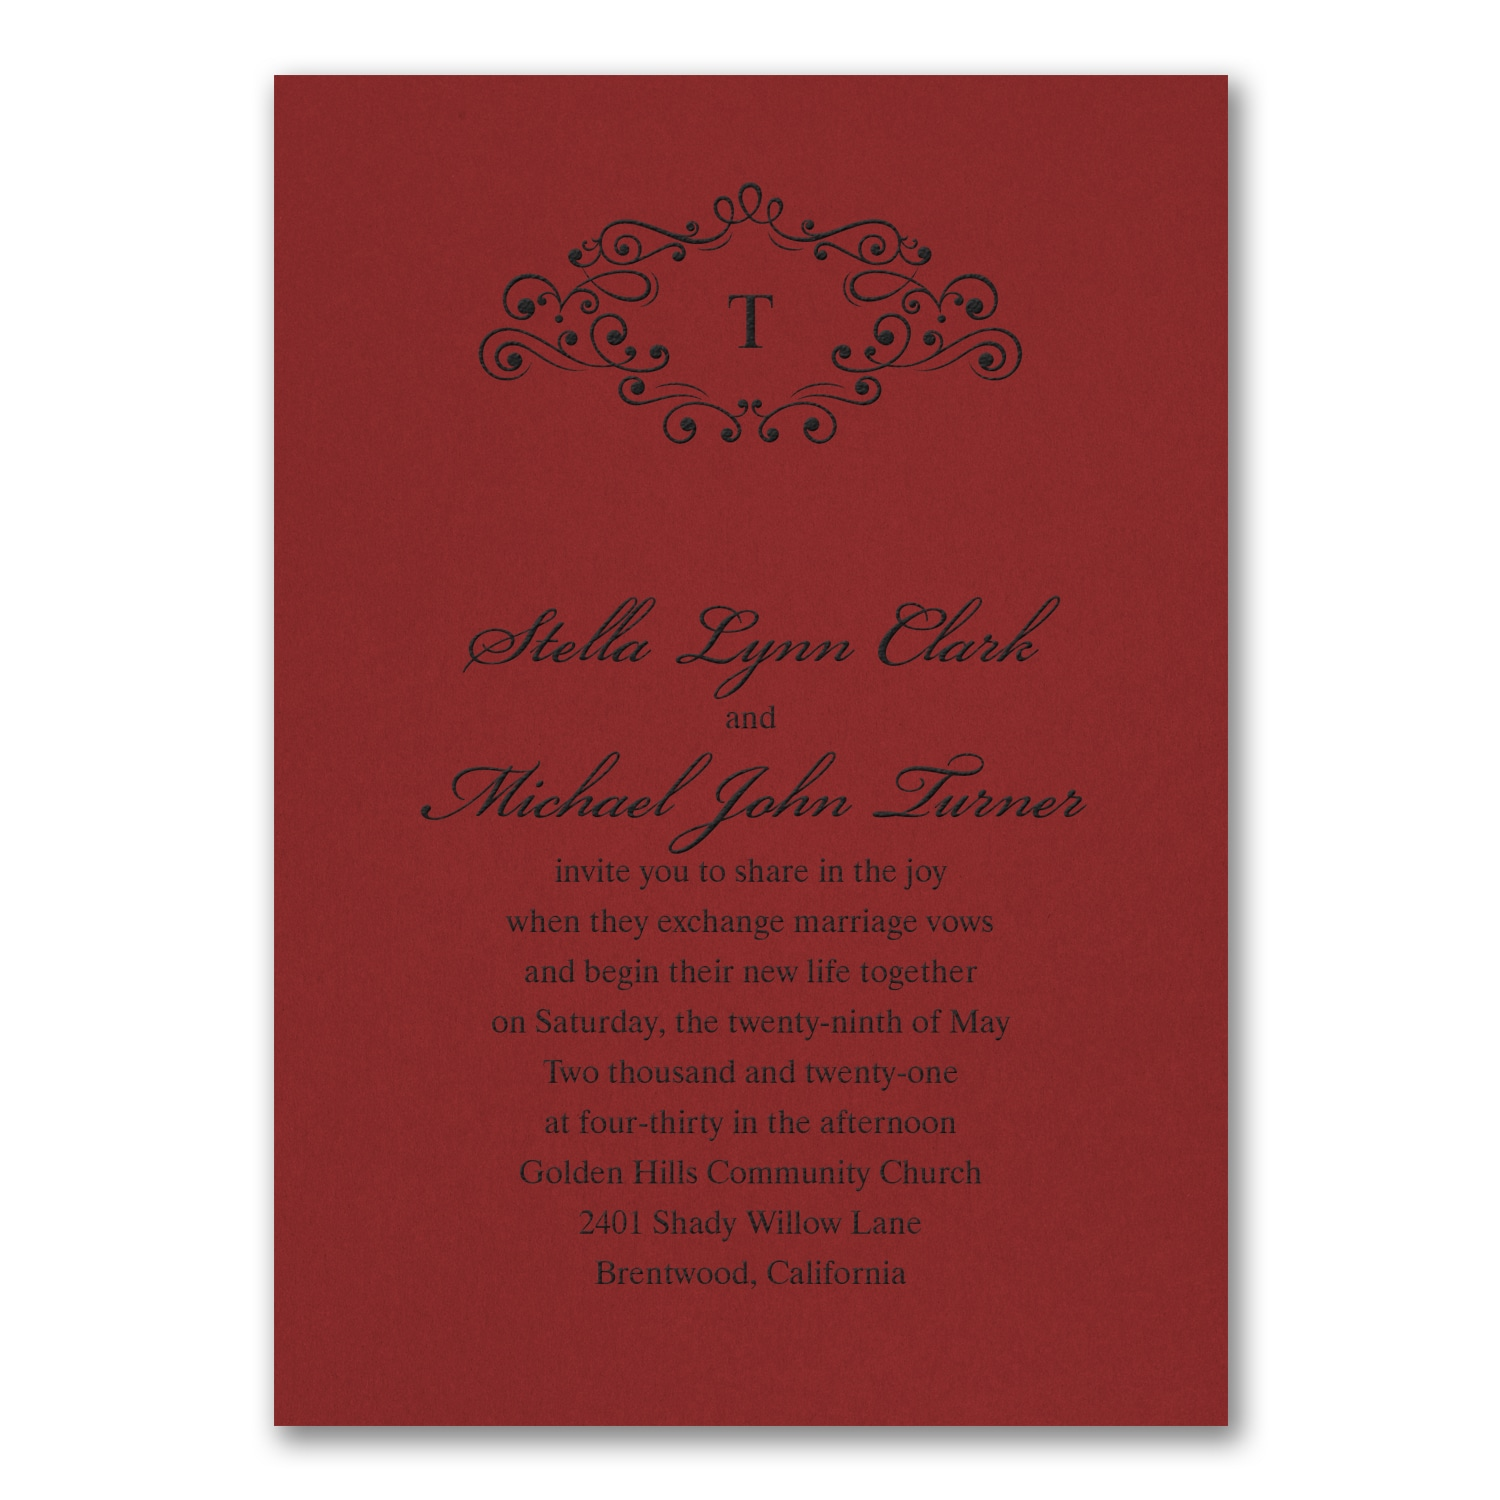 Contemporary Wedding Invitations Memphis Tn Frieze - Invitations and ...